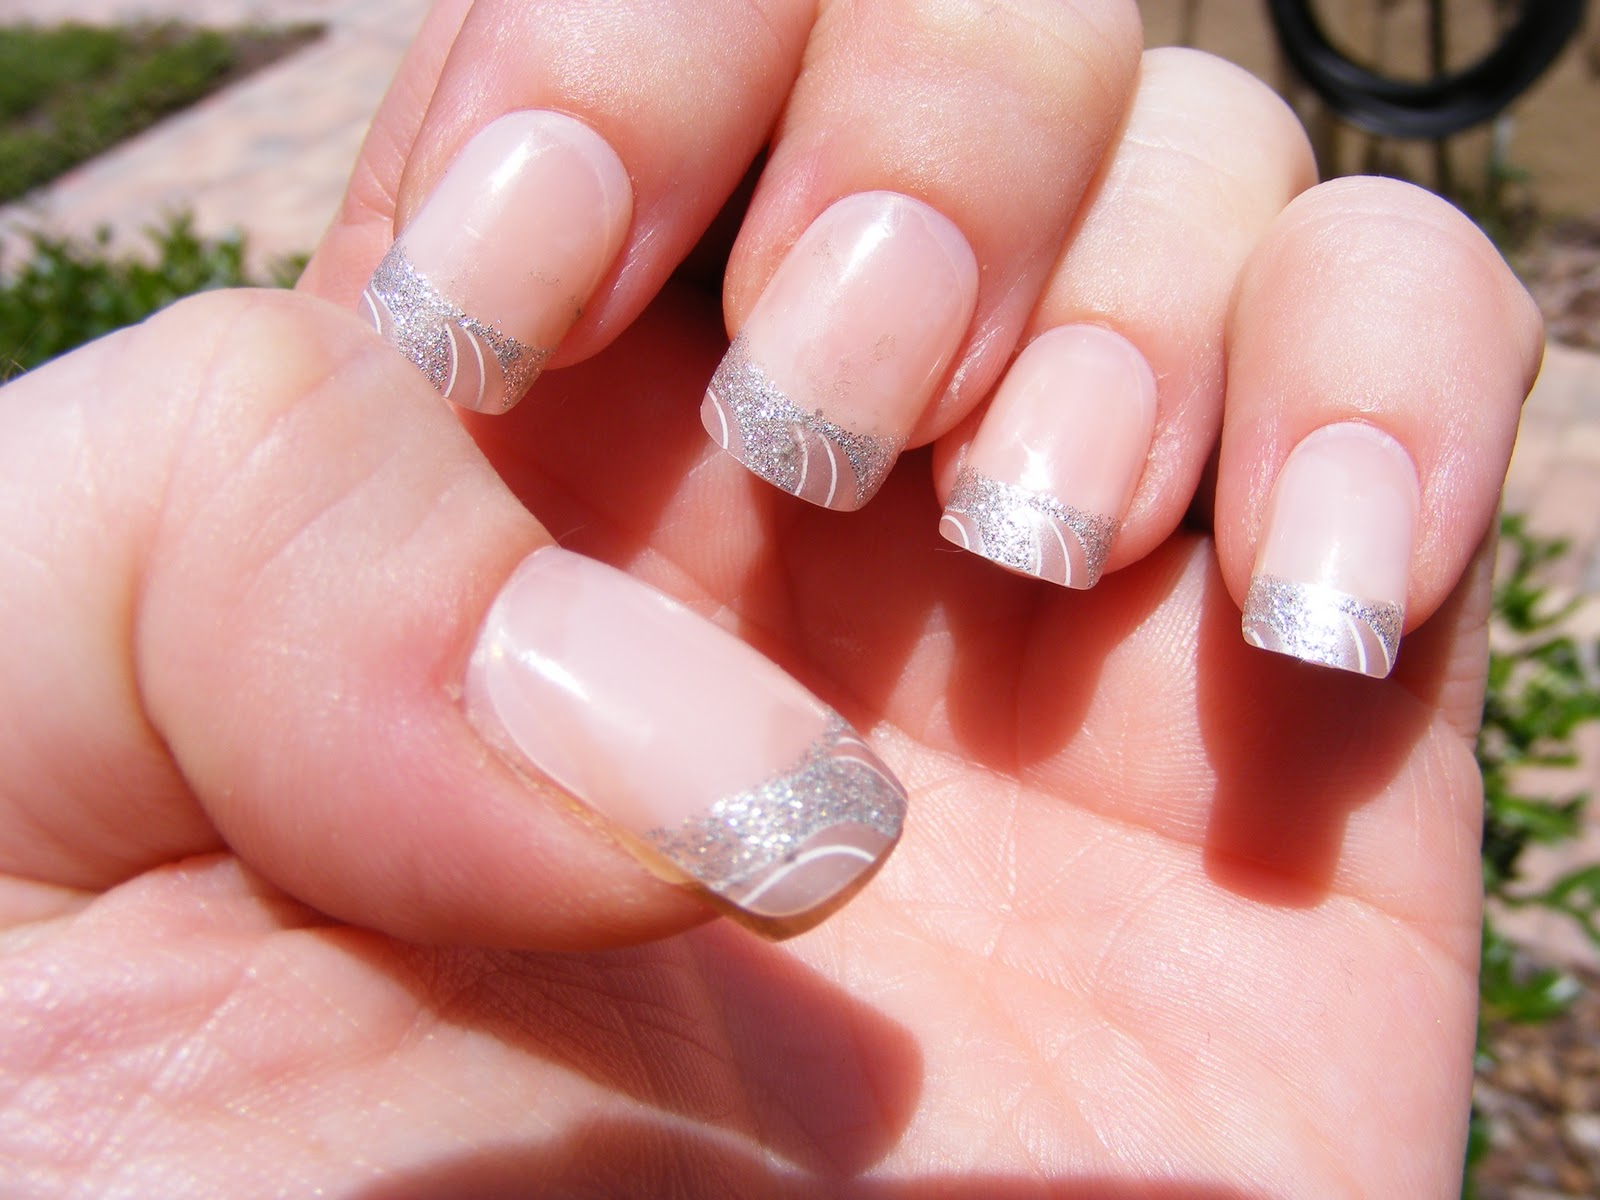 Pink french tip nail designs best nail design art 2015 pink french tip nail designs prinsesfo Choice Image